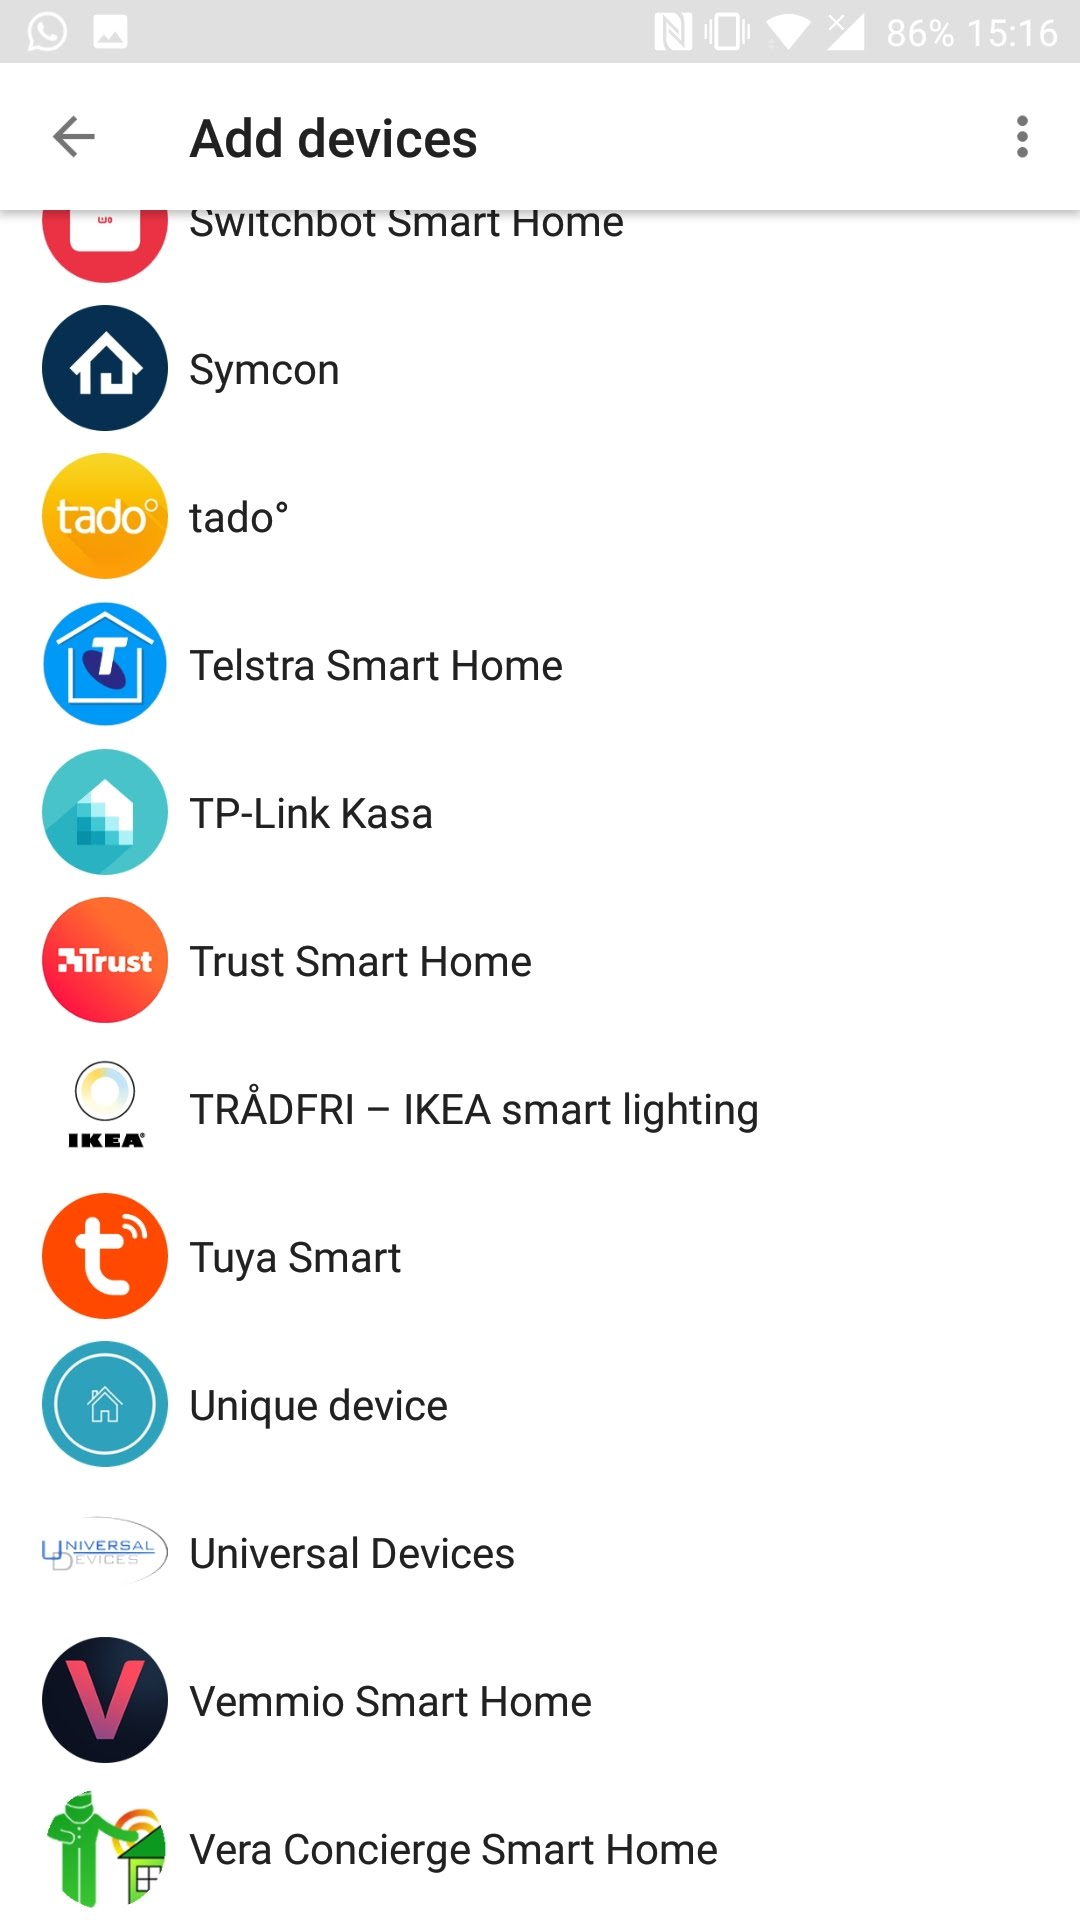 Ikea TRÅDFRI smart lights can now be controlled from Google Home and